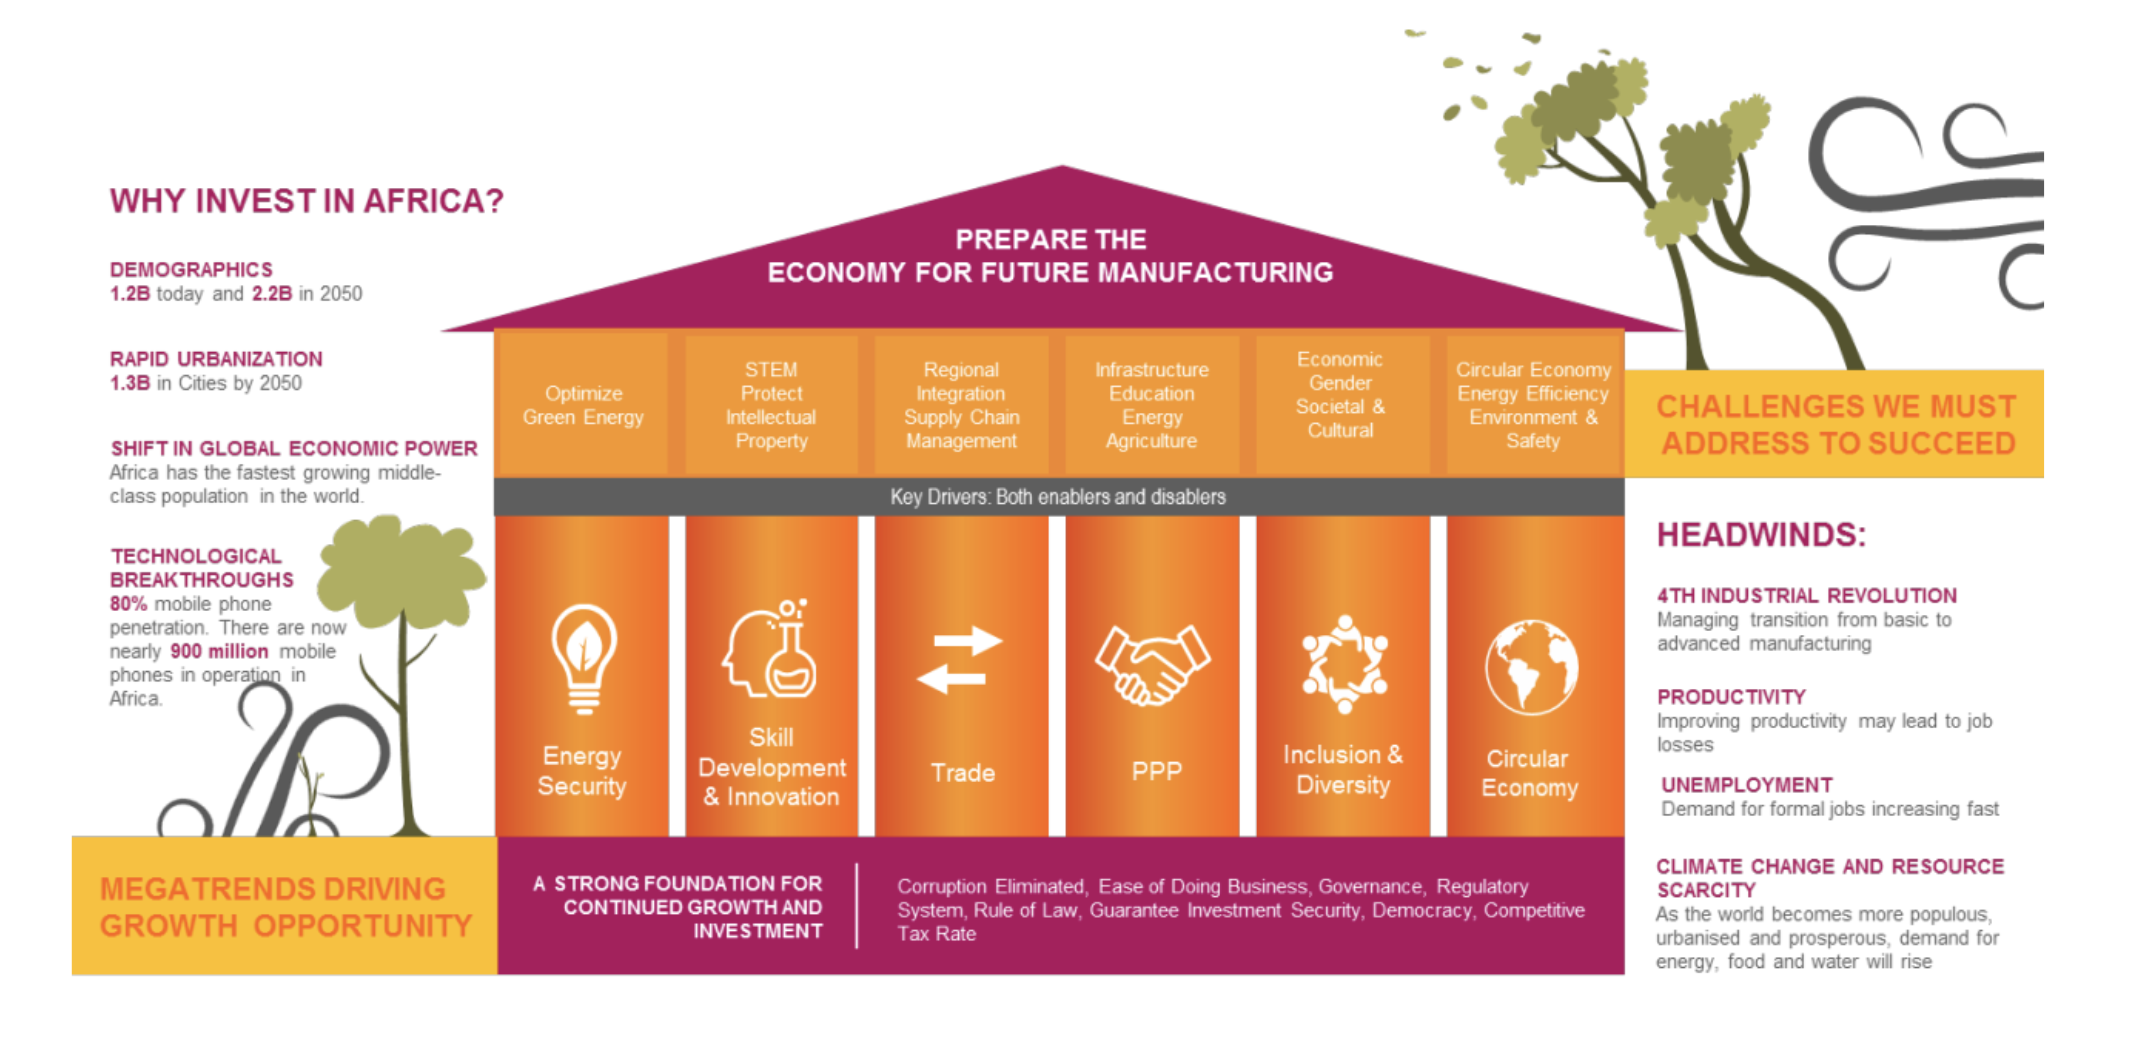 A roadmap for Africa's manufacturing future